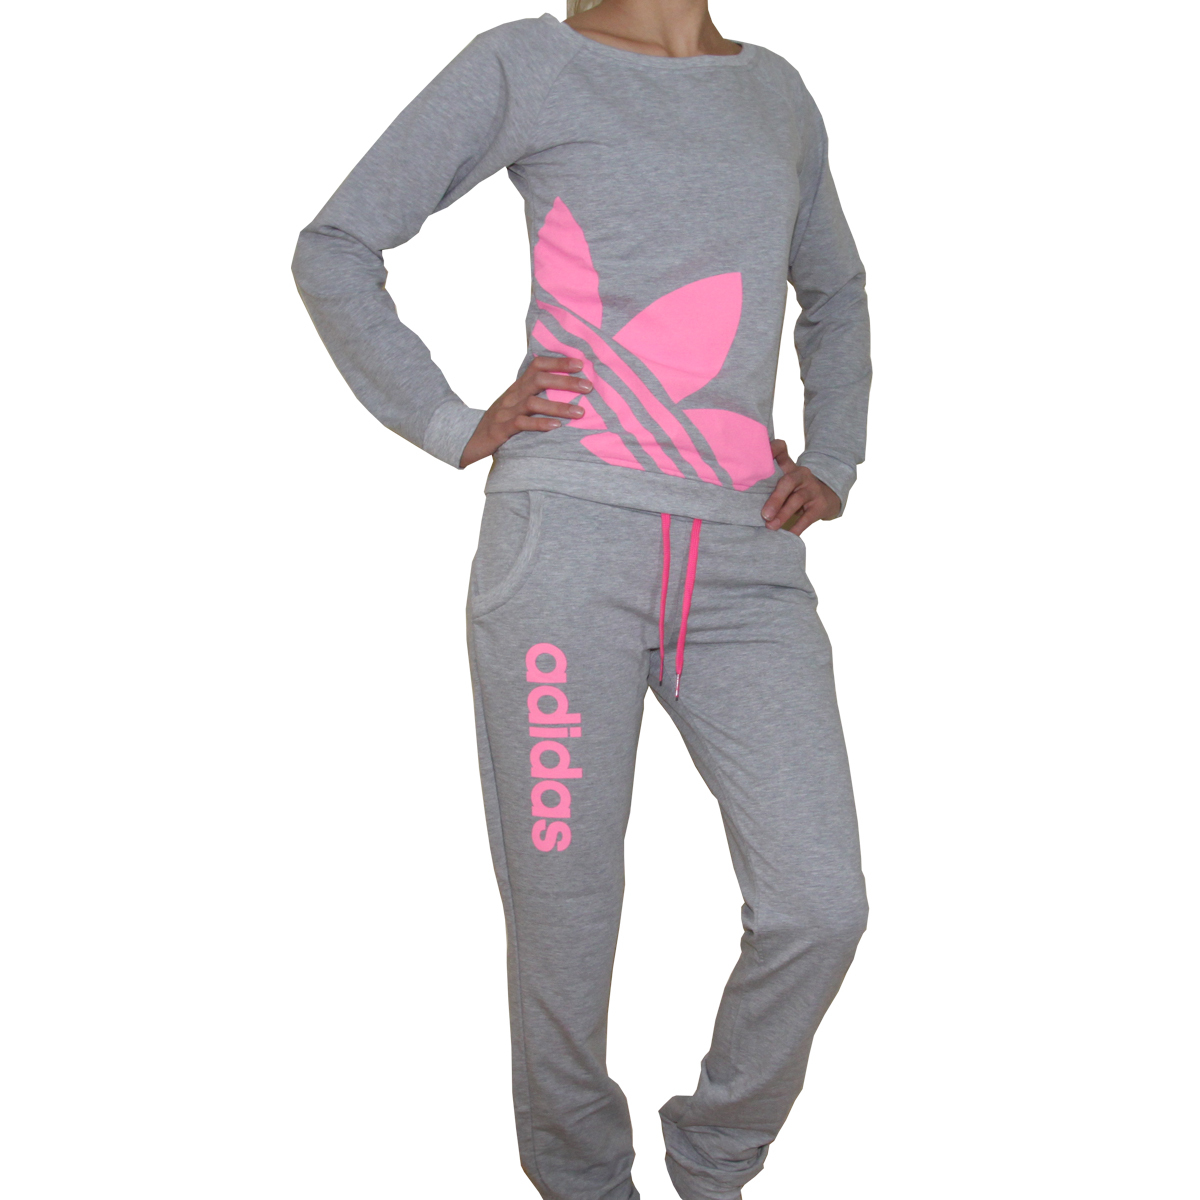 Adidas Neon Women Tracksuit Sweatsuit Track Pants Tops gray - Athletic Apparel